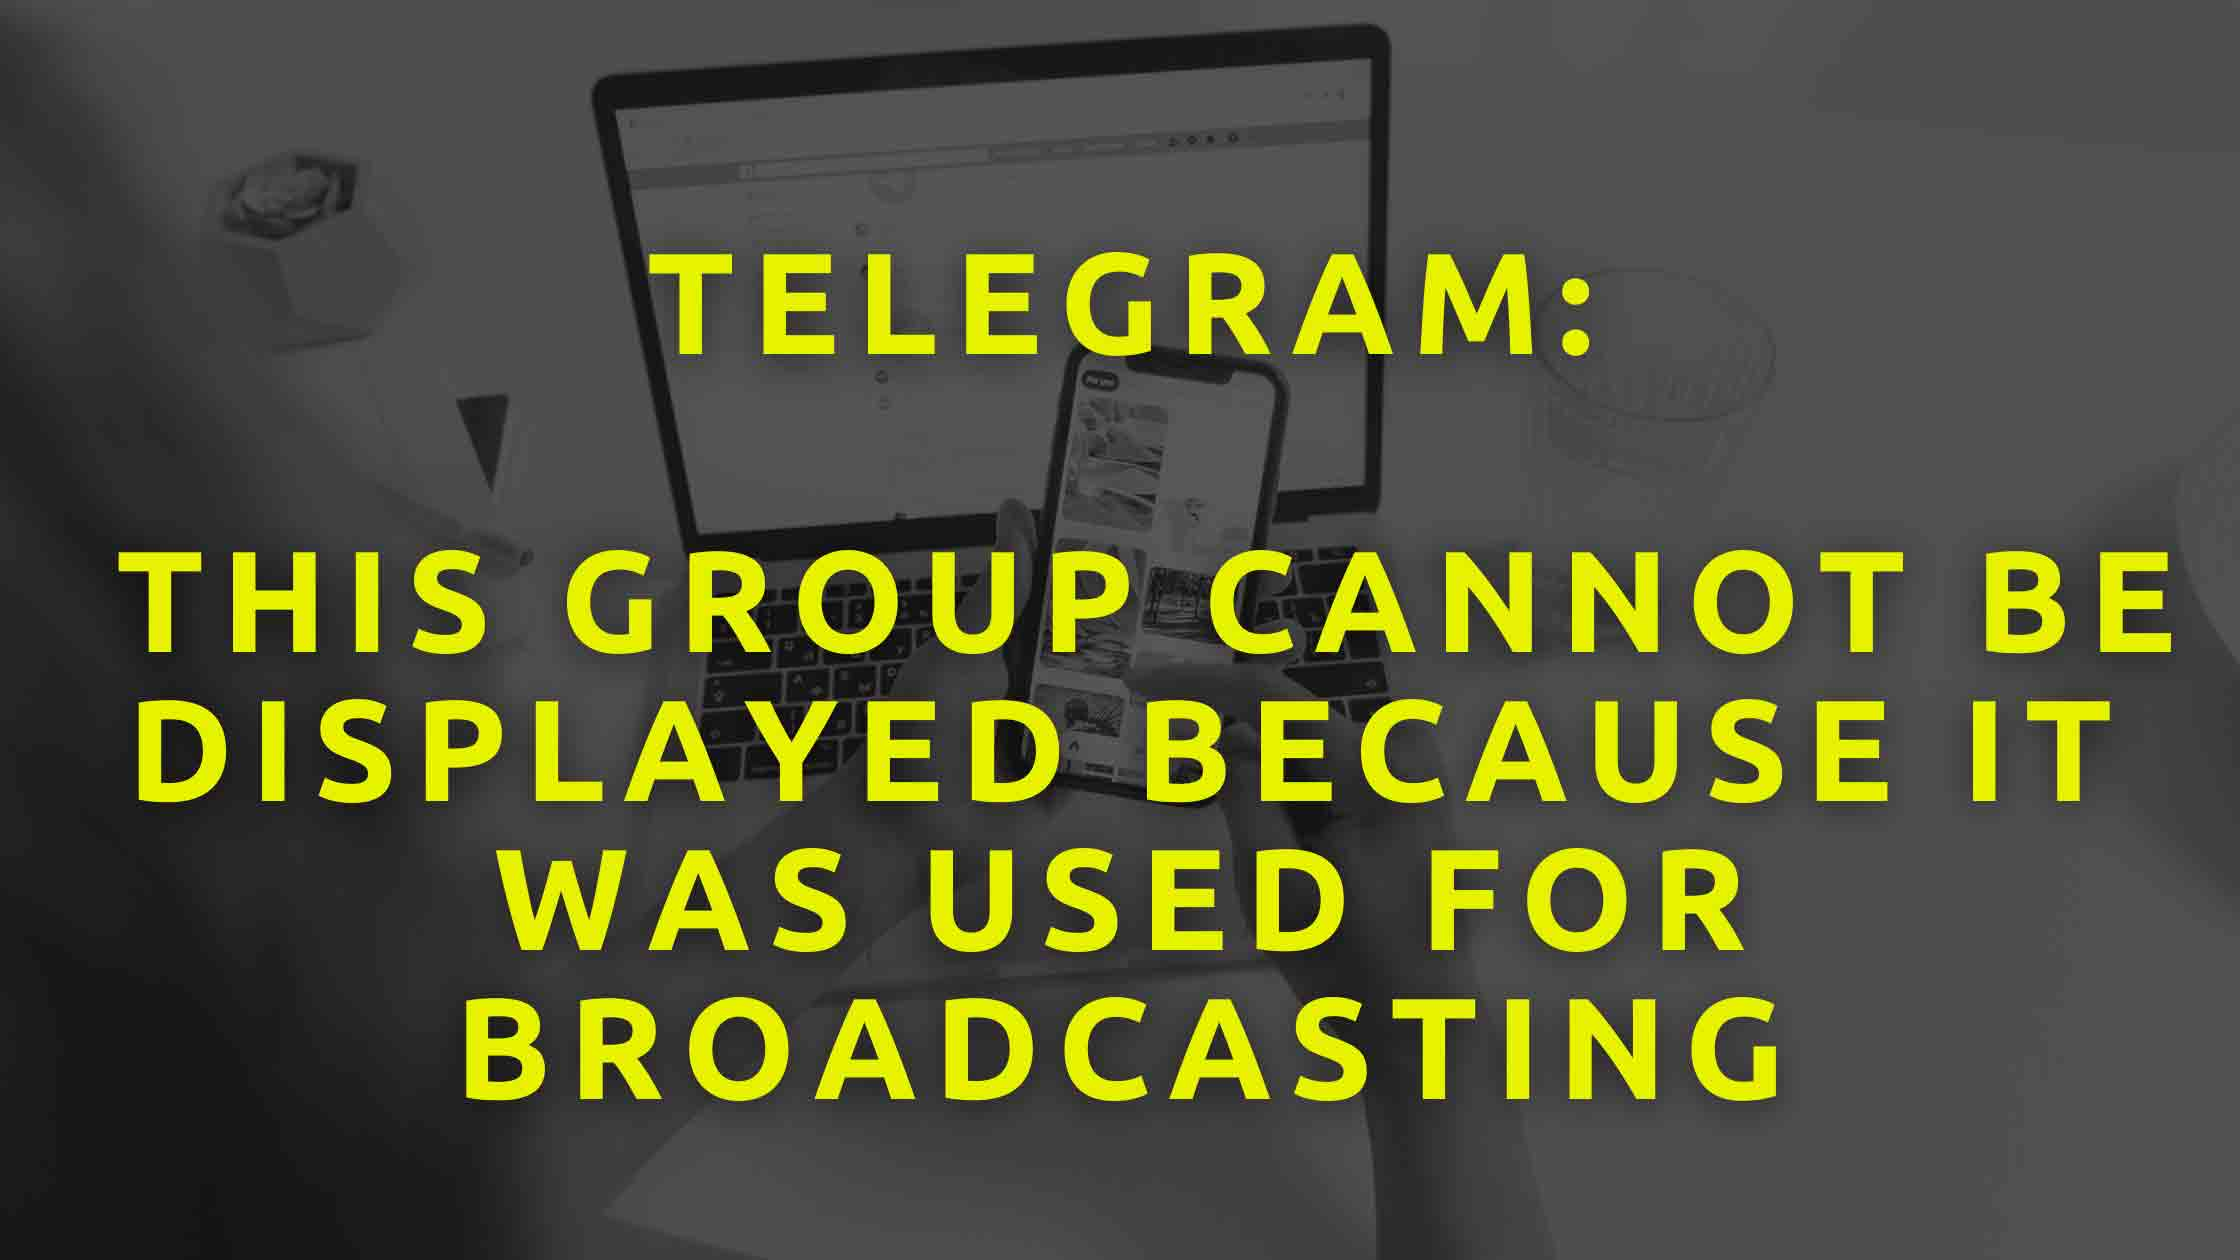 Telegram-This-Group-Cannot-Be-Displayed-Because-It-Was-Used-For-Broadcasting